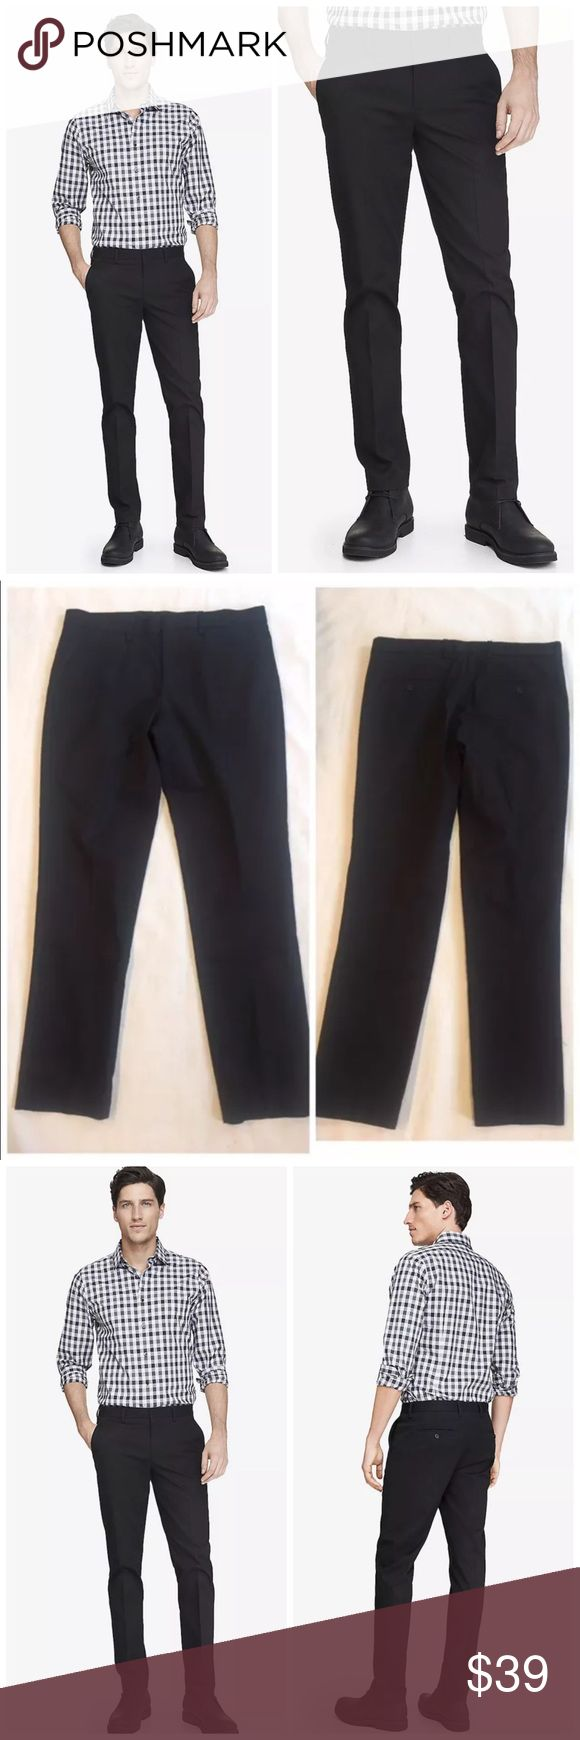 "Express Skinny Innovator Cotton Stretch Dress Pant EXPRESS Skinny Innovator Black Stretch Cotton Pants $70 retail new without tag, inner label marked, perfect condition  Inspired by the style of the ultimate jet setter, the Innovator is detailed with extra-slim tailoring in stretch cotton, so the guy at the center of everything is ready for anything. Skinny fit, sits below waist, slim leg hand and back pockets  Cotton/Lycra® spandex Size 33: waist flat 18"", inseam 30"", leg opening 14""…"